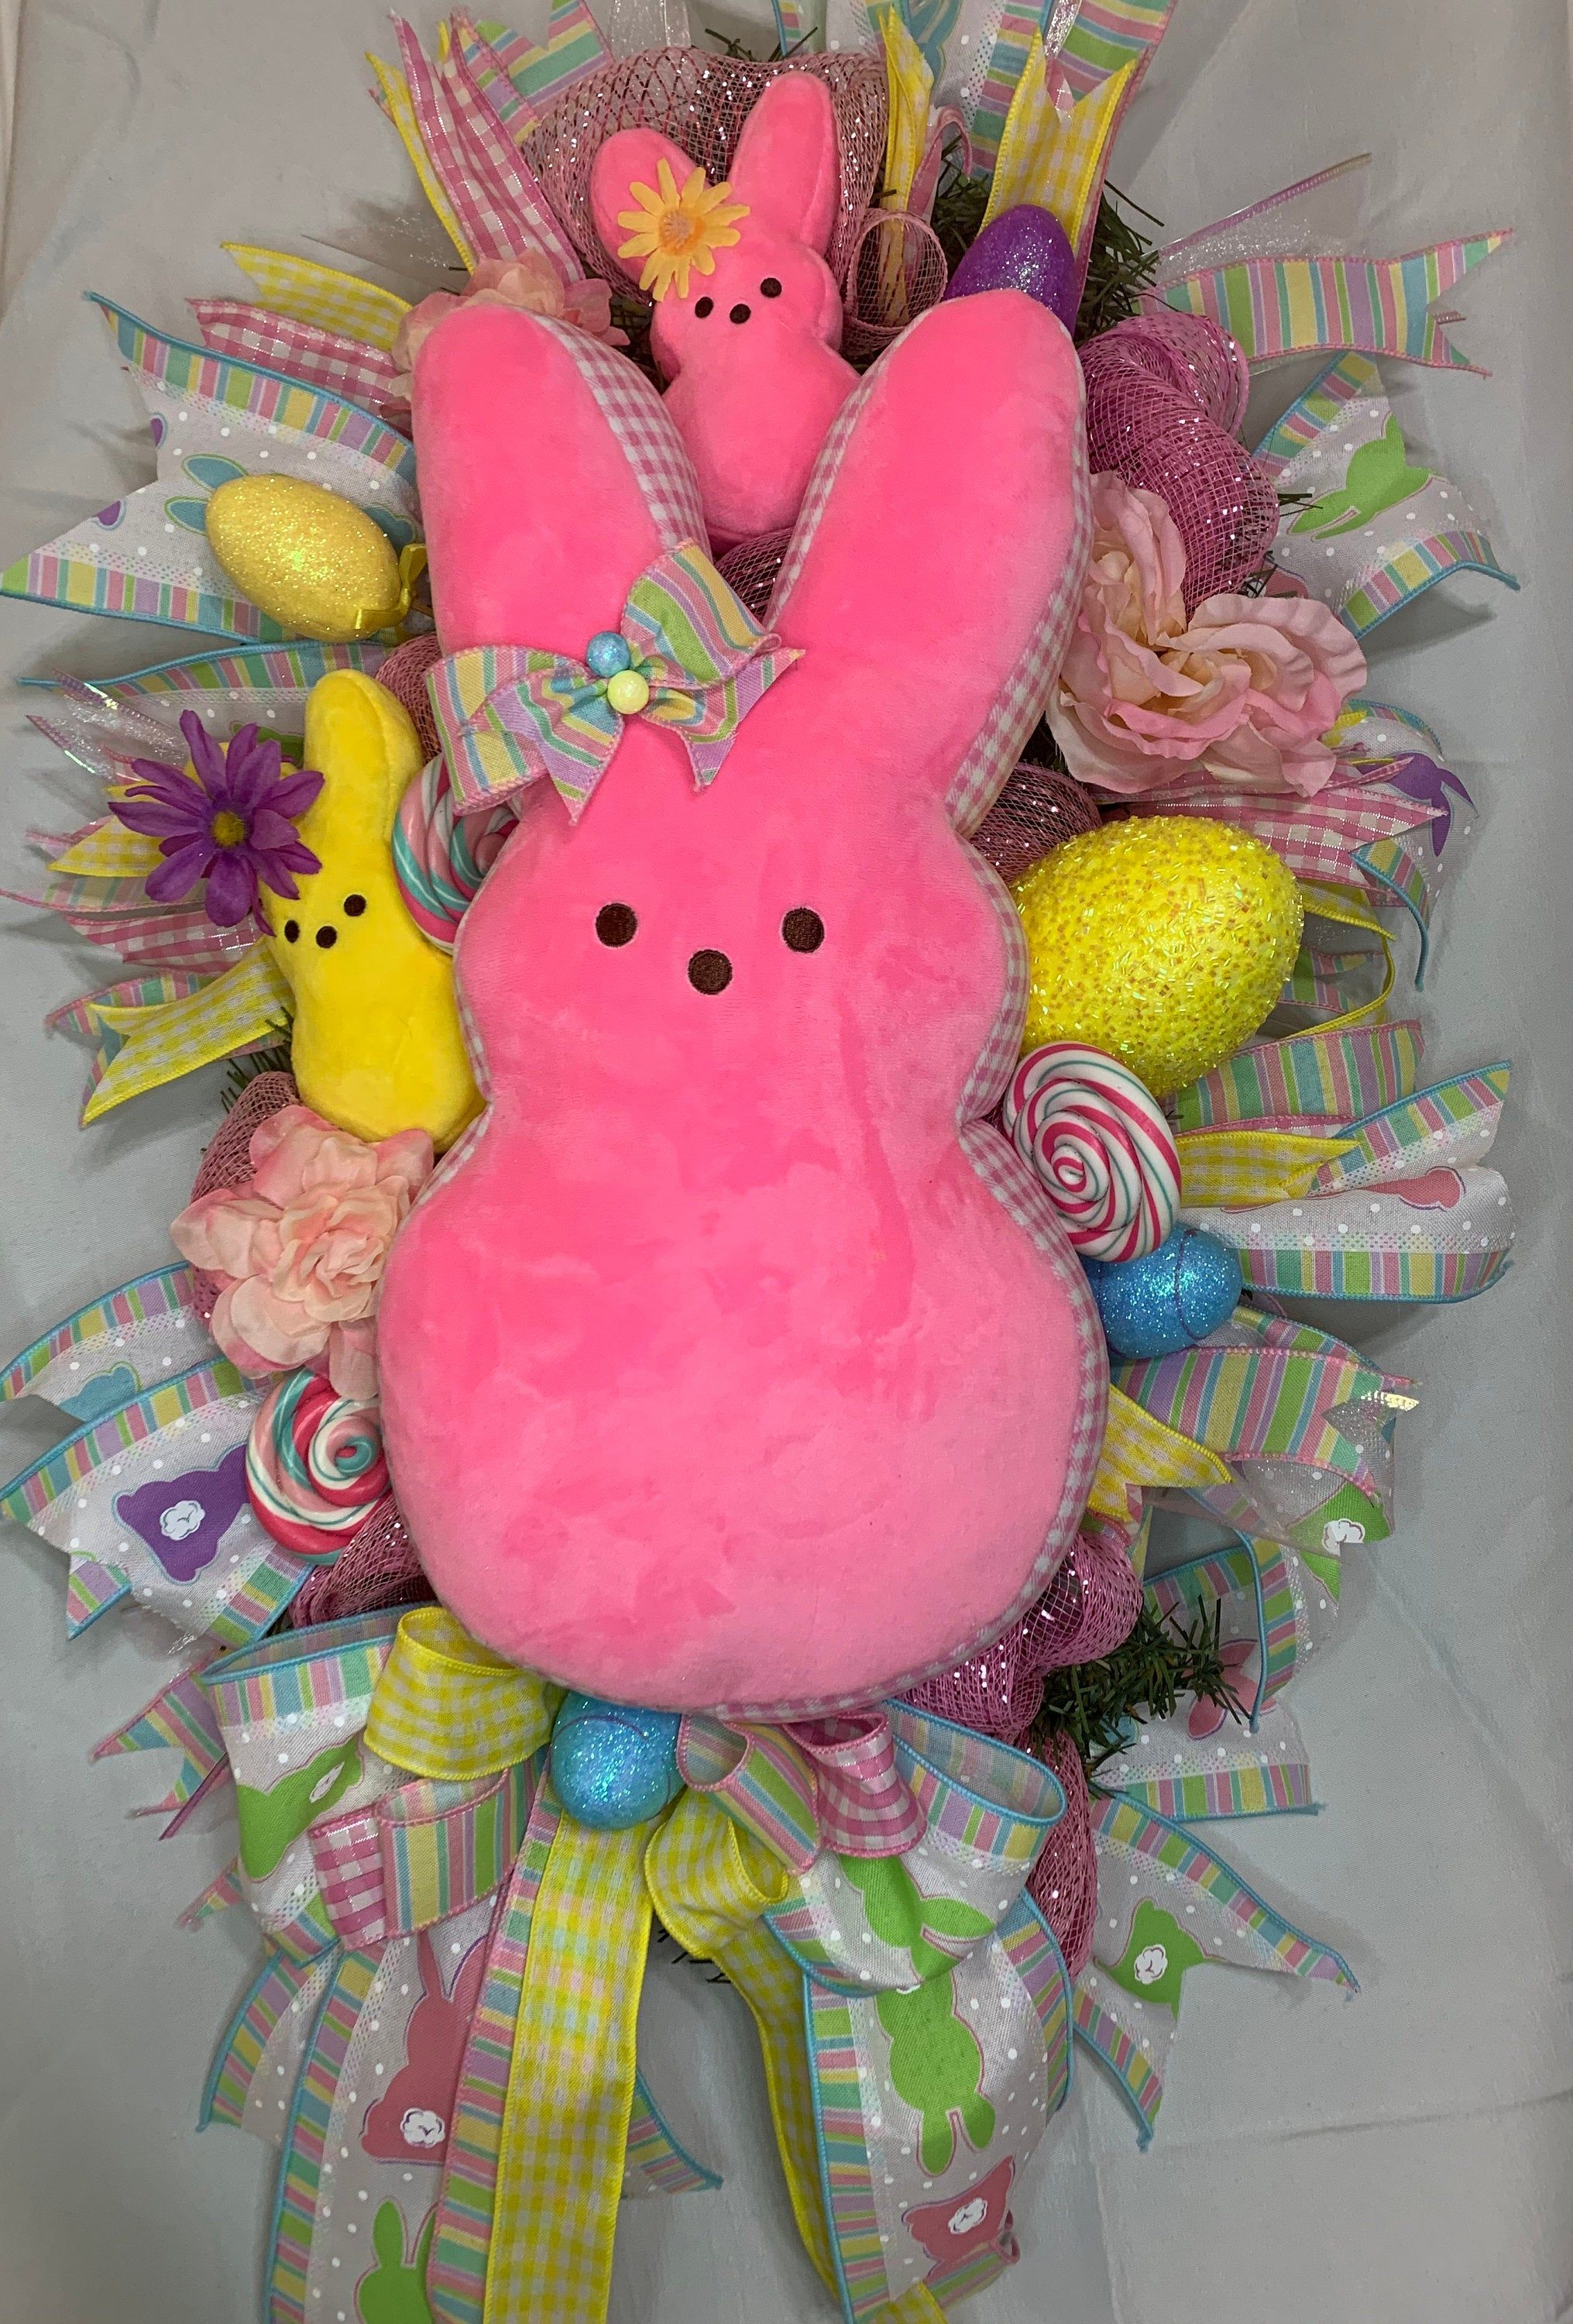 Easter Bunny Plush Peep Wreath, Easter Wreath, Easter Decor, Easter Swags, Door Decor - Easter swags, Easter wreaths, Easter bunny plush, Door decorations, Easter bunny, Bunny plush - Easter Bunny Plush Peep Wreath Wreath embellished with  colorful ribbon, 17  plush peep, and Flowers This beauty is perfect and will add to your Easter home decor  Sure to impress friends and family  All wreaths are handmade, and very detailed   Only quality products used to ensure your money worth Ready to ship Very carefully package, so it arrives just as you see it in the pictures  Wreath is shipped in a large corrugated box that is secure to protected and minimize damage that may occur while in transit I do recommend hanging this Wreath in a protected area if hanging outdoors  You will be able to enjoy your wreath for years to come if properly cared for  Use a door hanger or ribbon to hang this beauty up  Thanks for shopping with Pamela Creations Favorite my shop to see all new listing in your Etsy feed Instagram pamelas creation89 Facebook Pamela's Creation